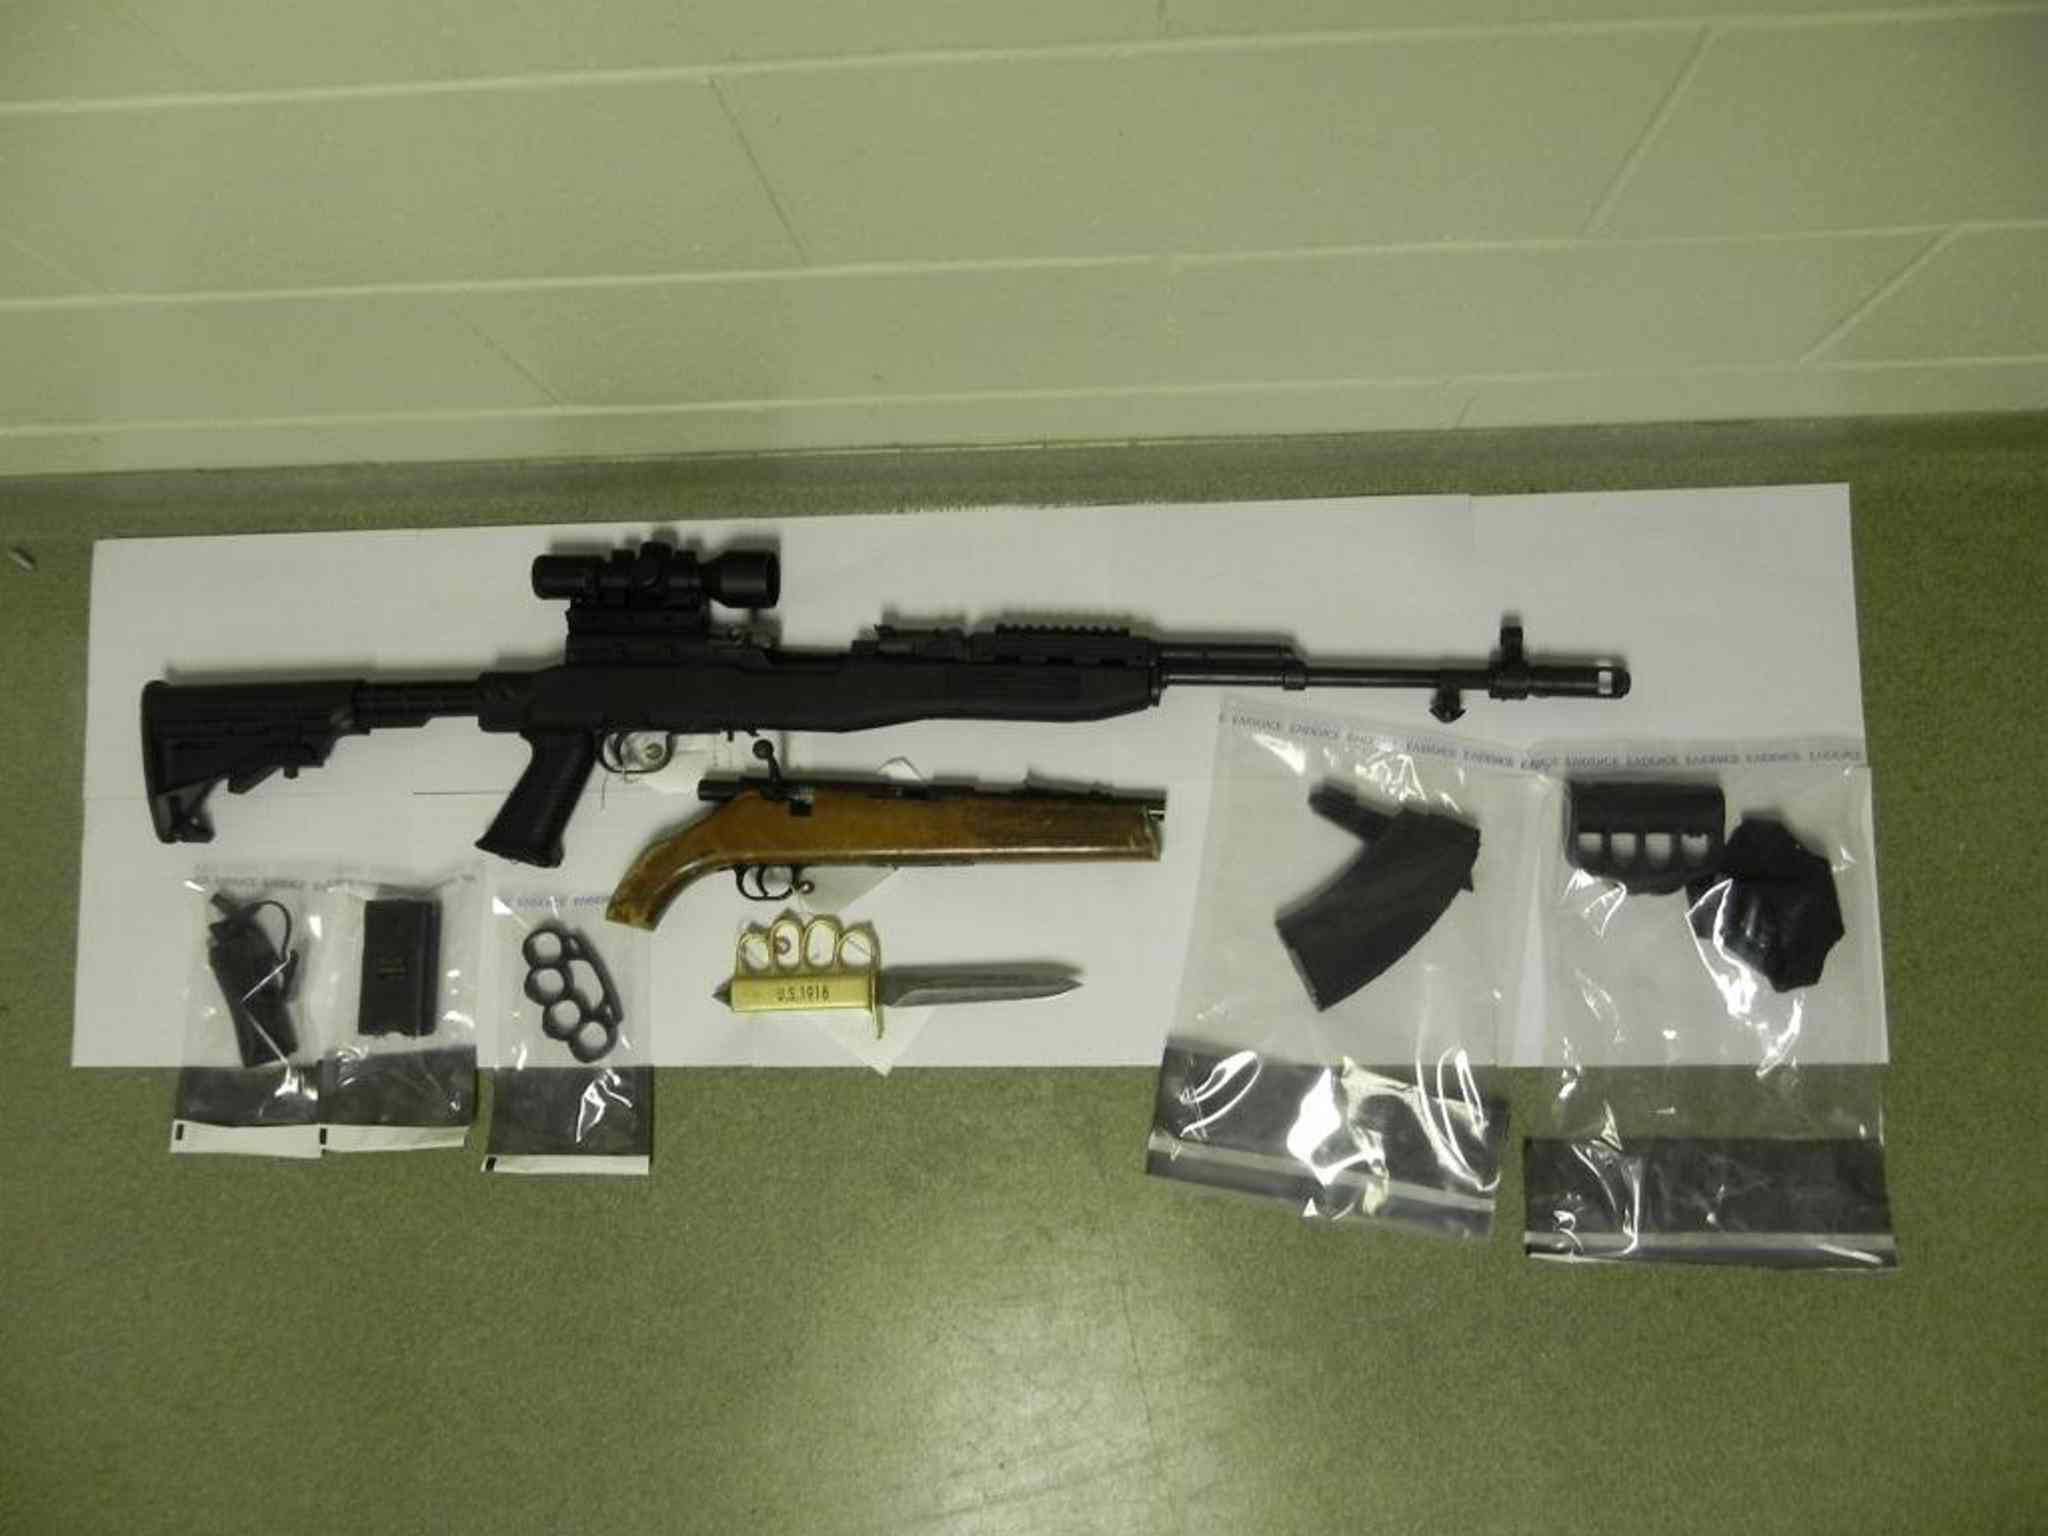 Some firearms seized during the raid of a house in the RM of Lac du Bonnet.